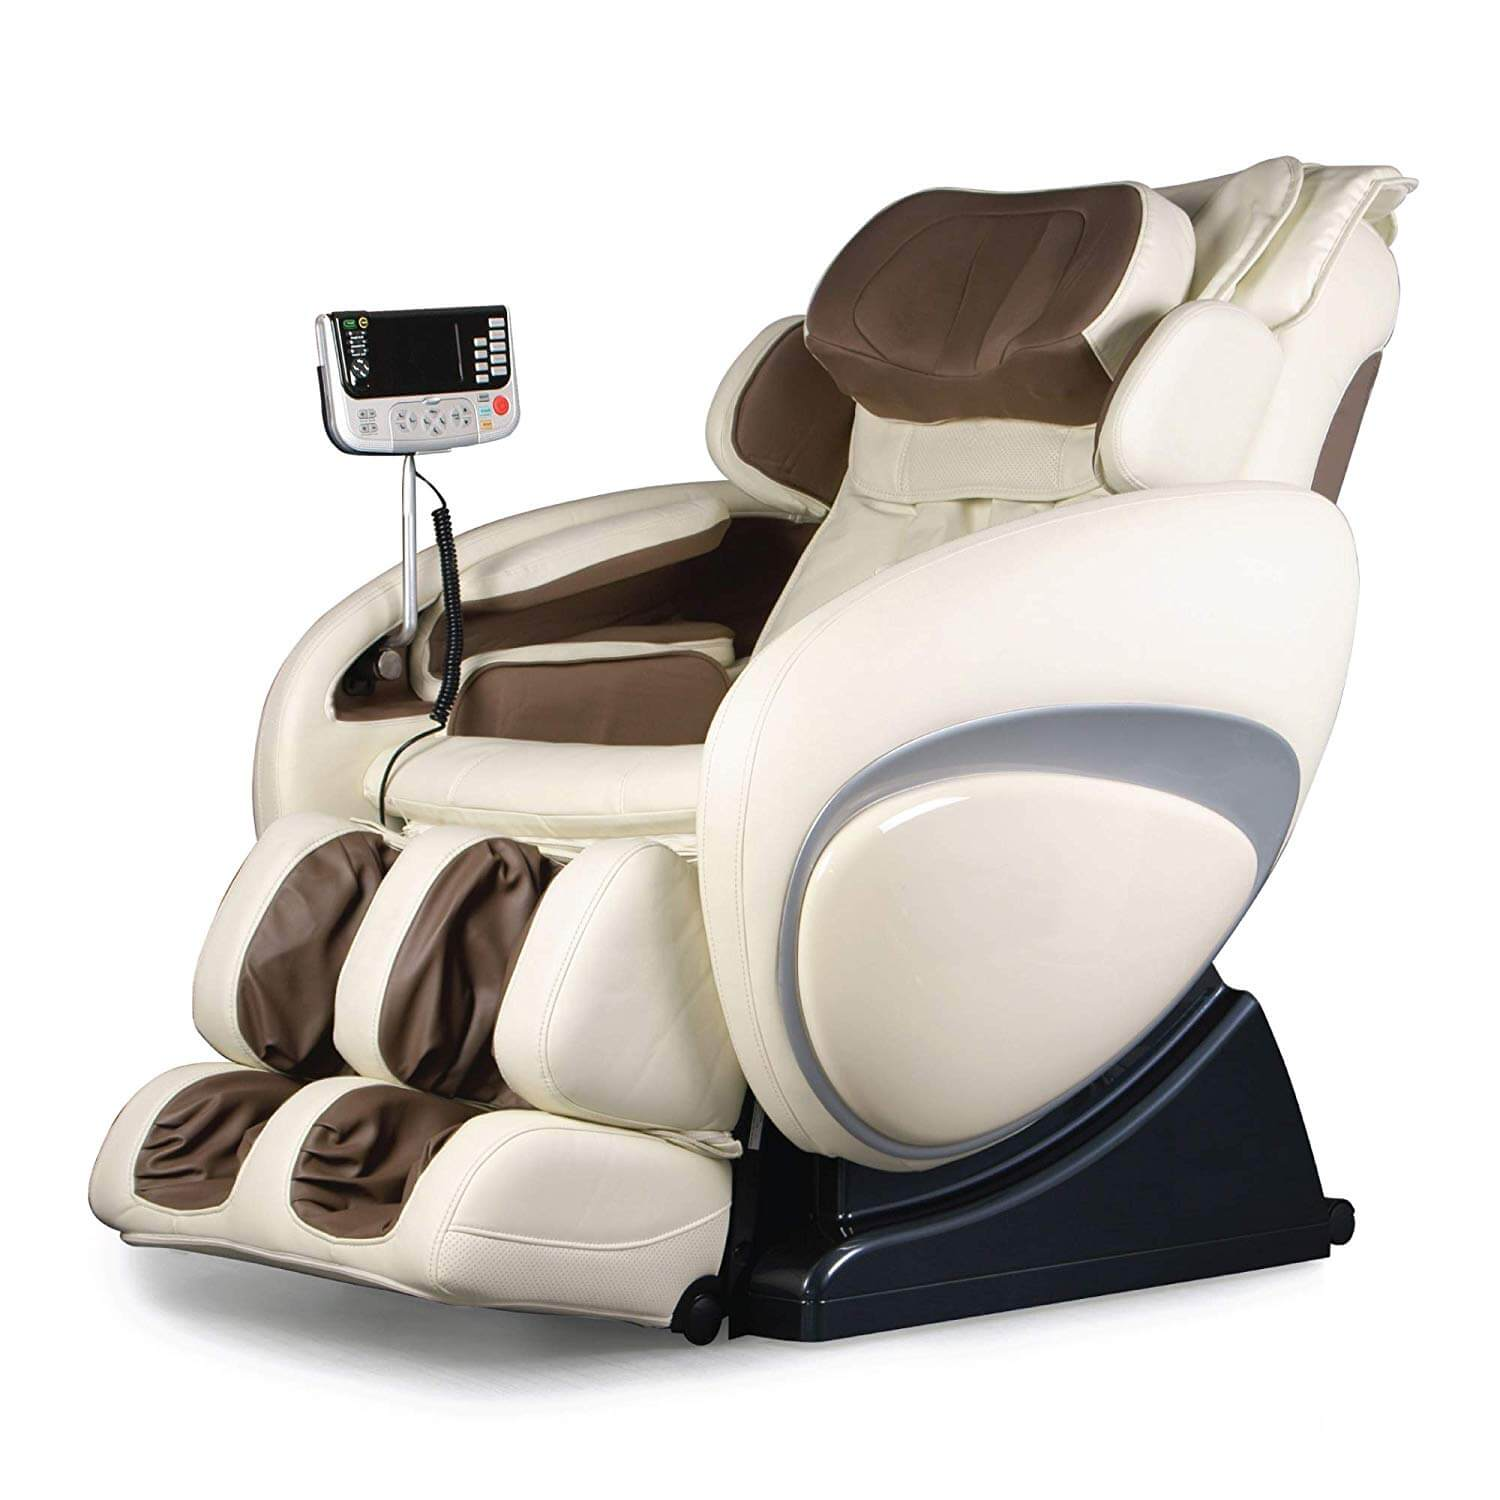 Top 10 Best Full Body Air Massage Chairs Review-8